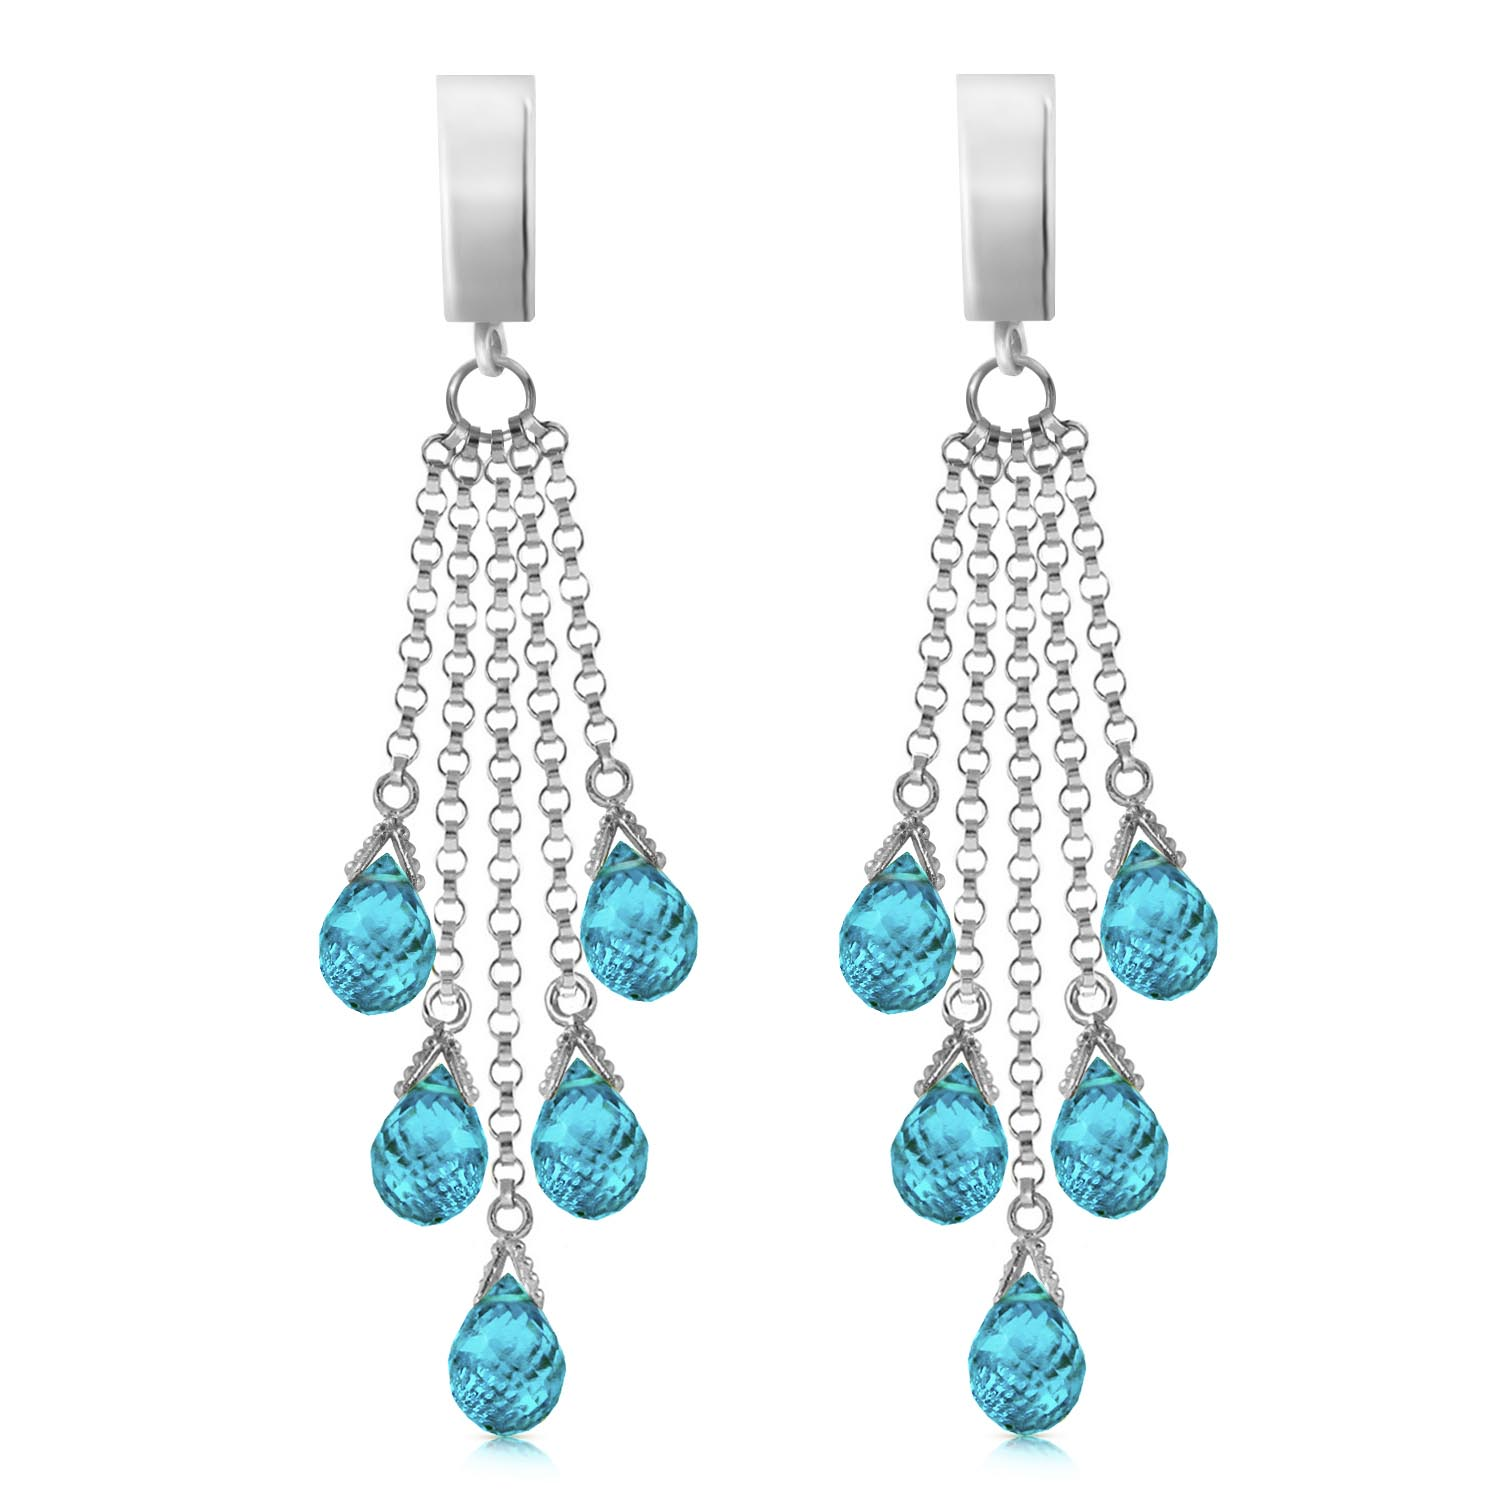 Blue Topaz Droplet Briolette Earrings 7.3ctw in 9ct White Gold